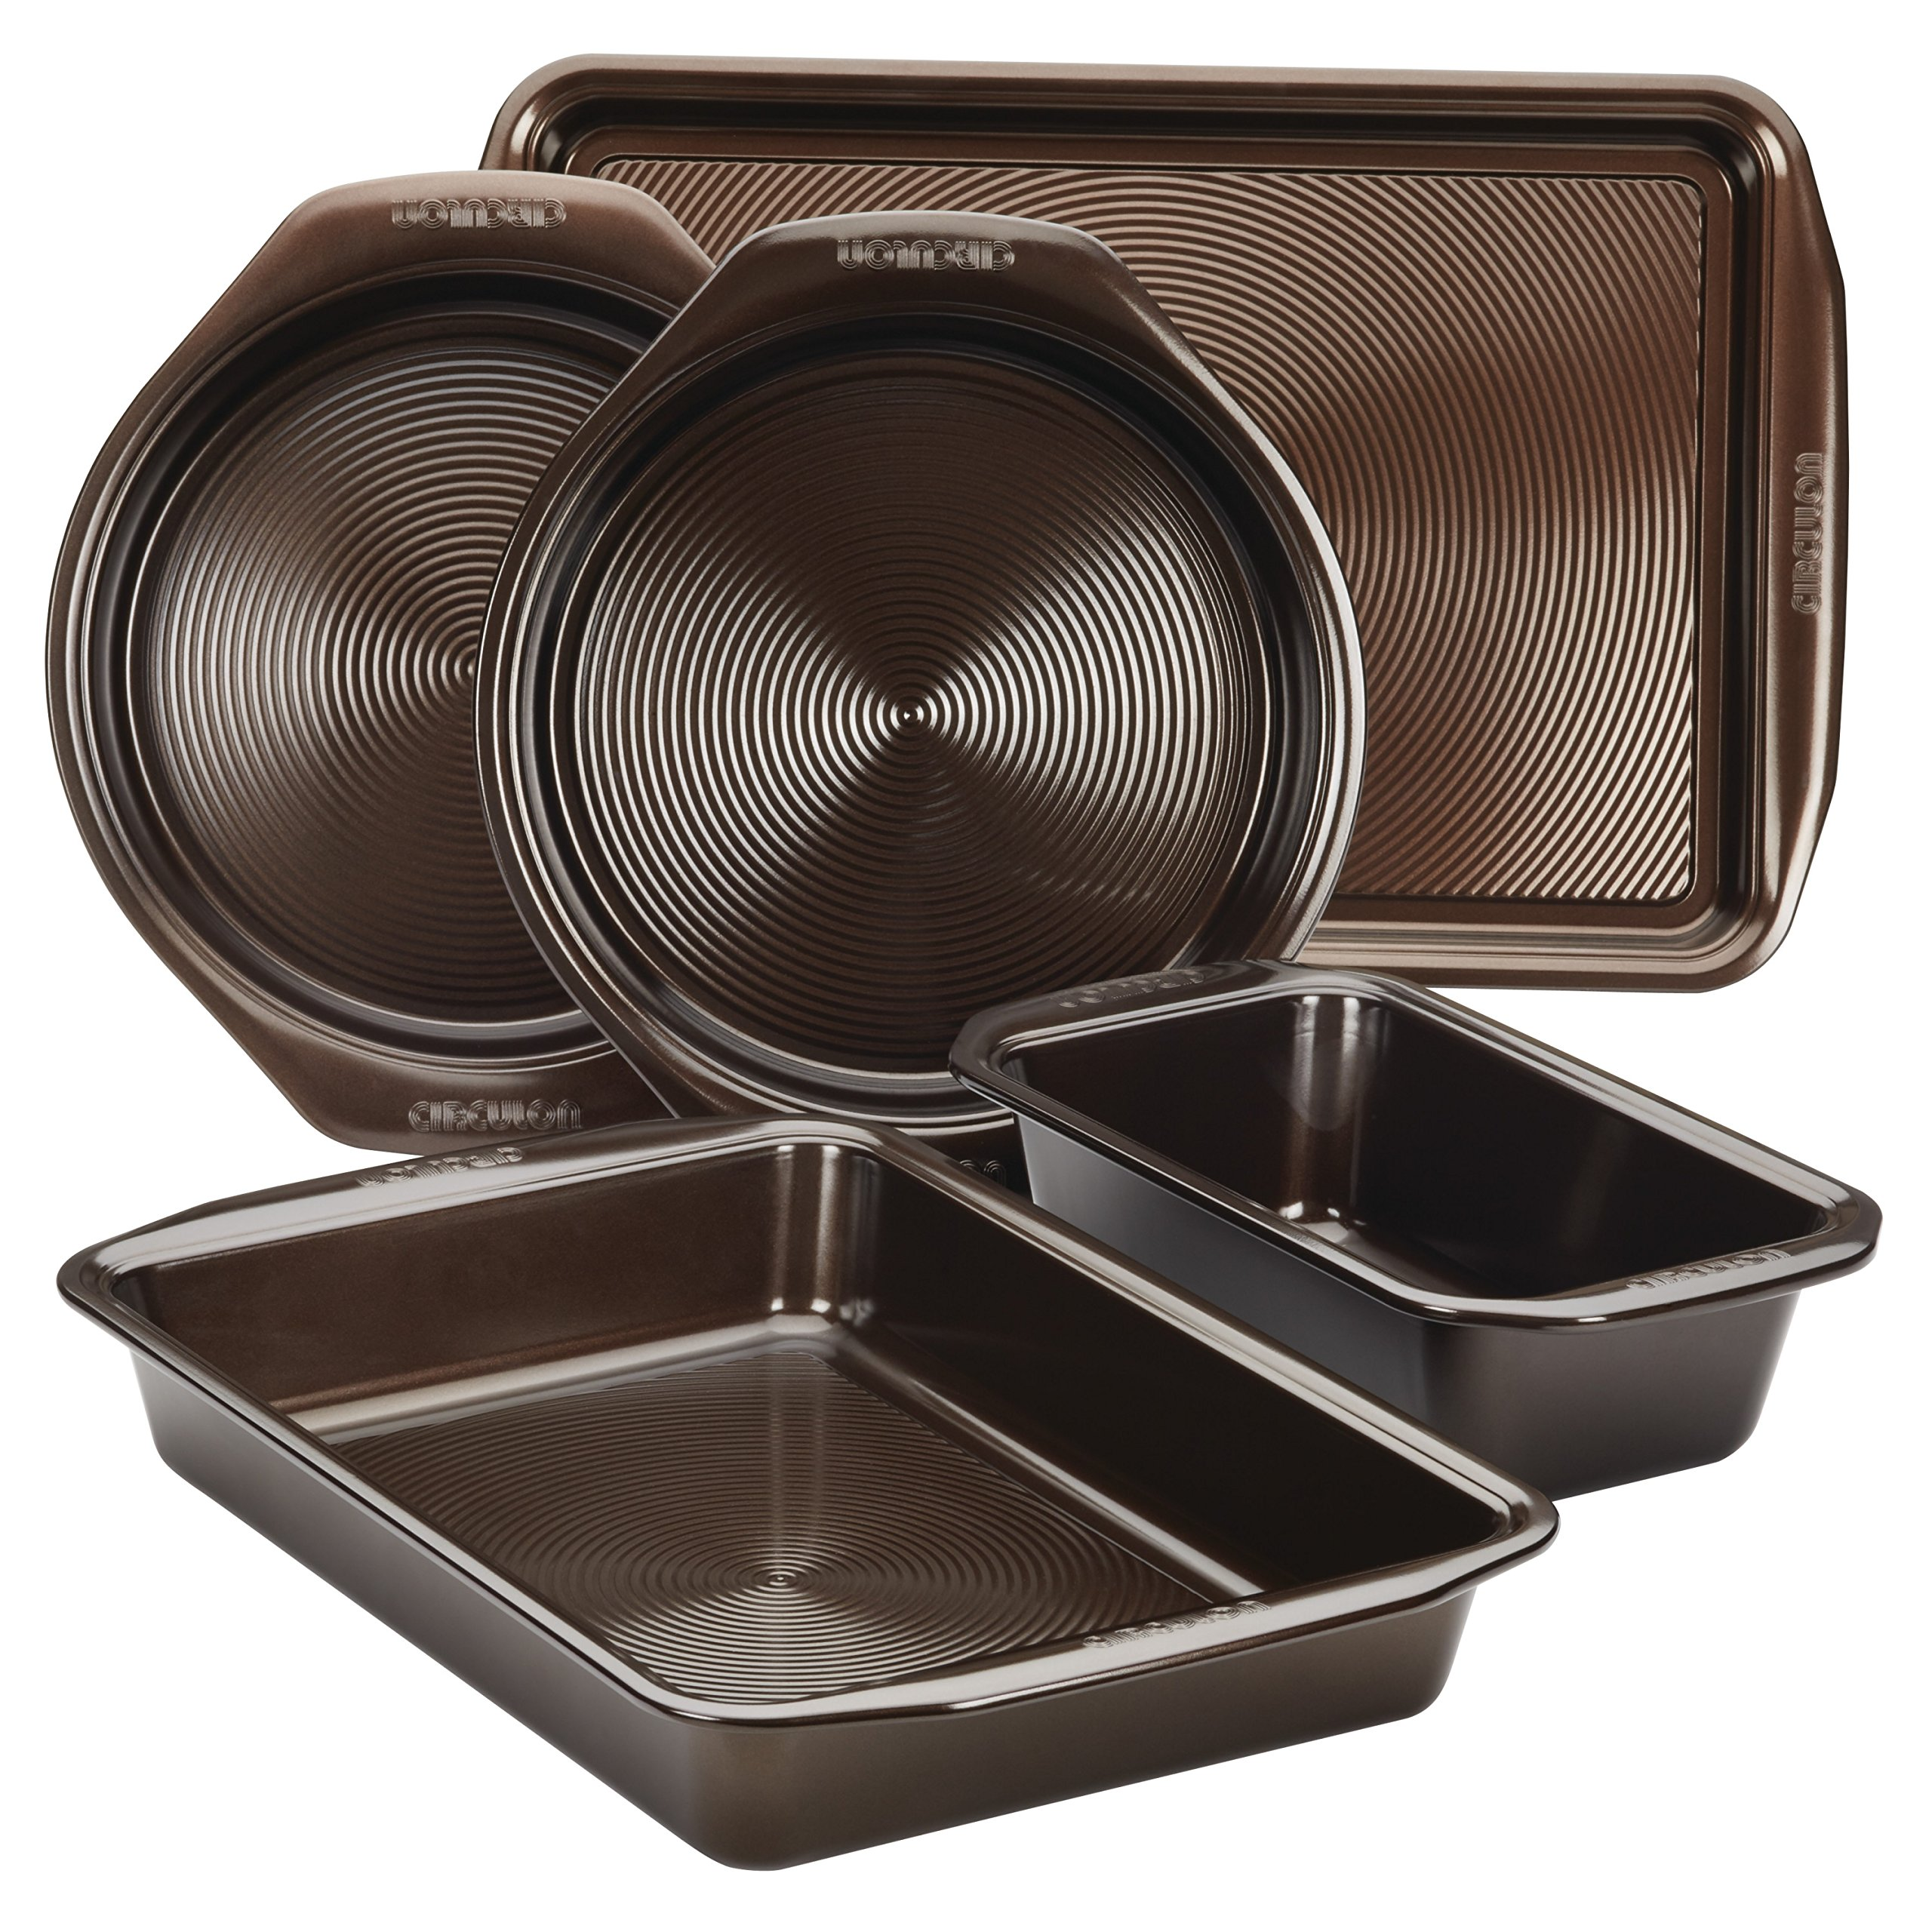 Circulon Nonstick Bakeware 5-Piece Bakeware Set, Chocolate Brown by Circulon (Image #1)